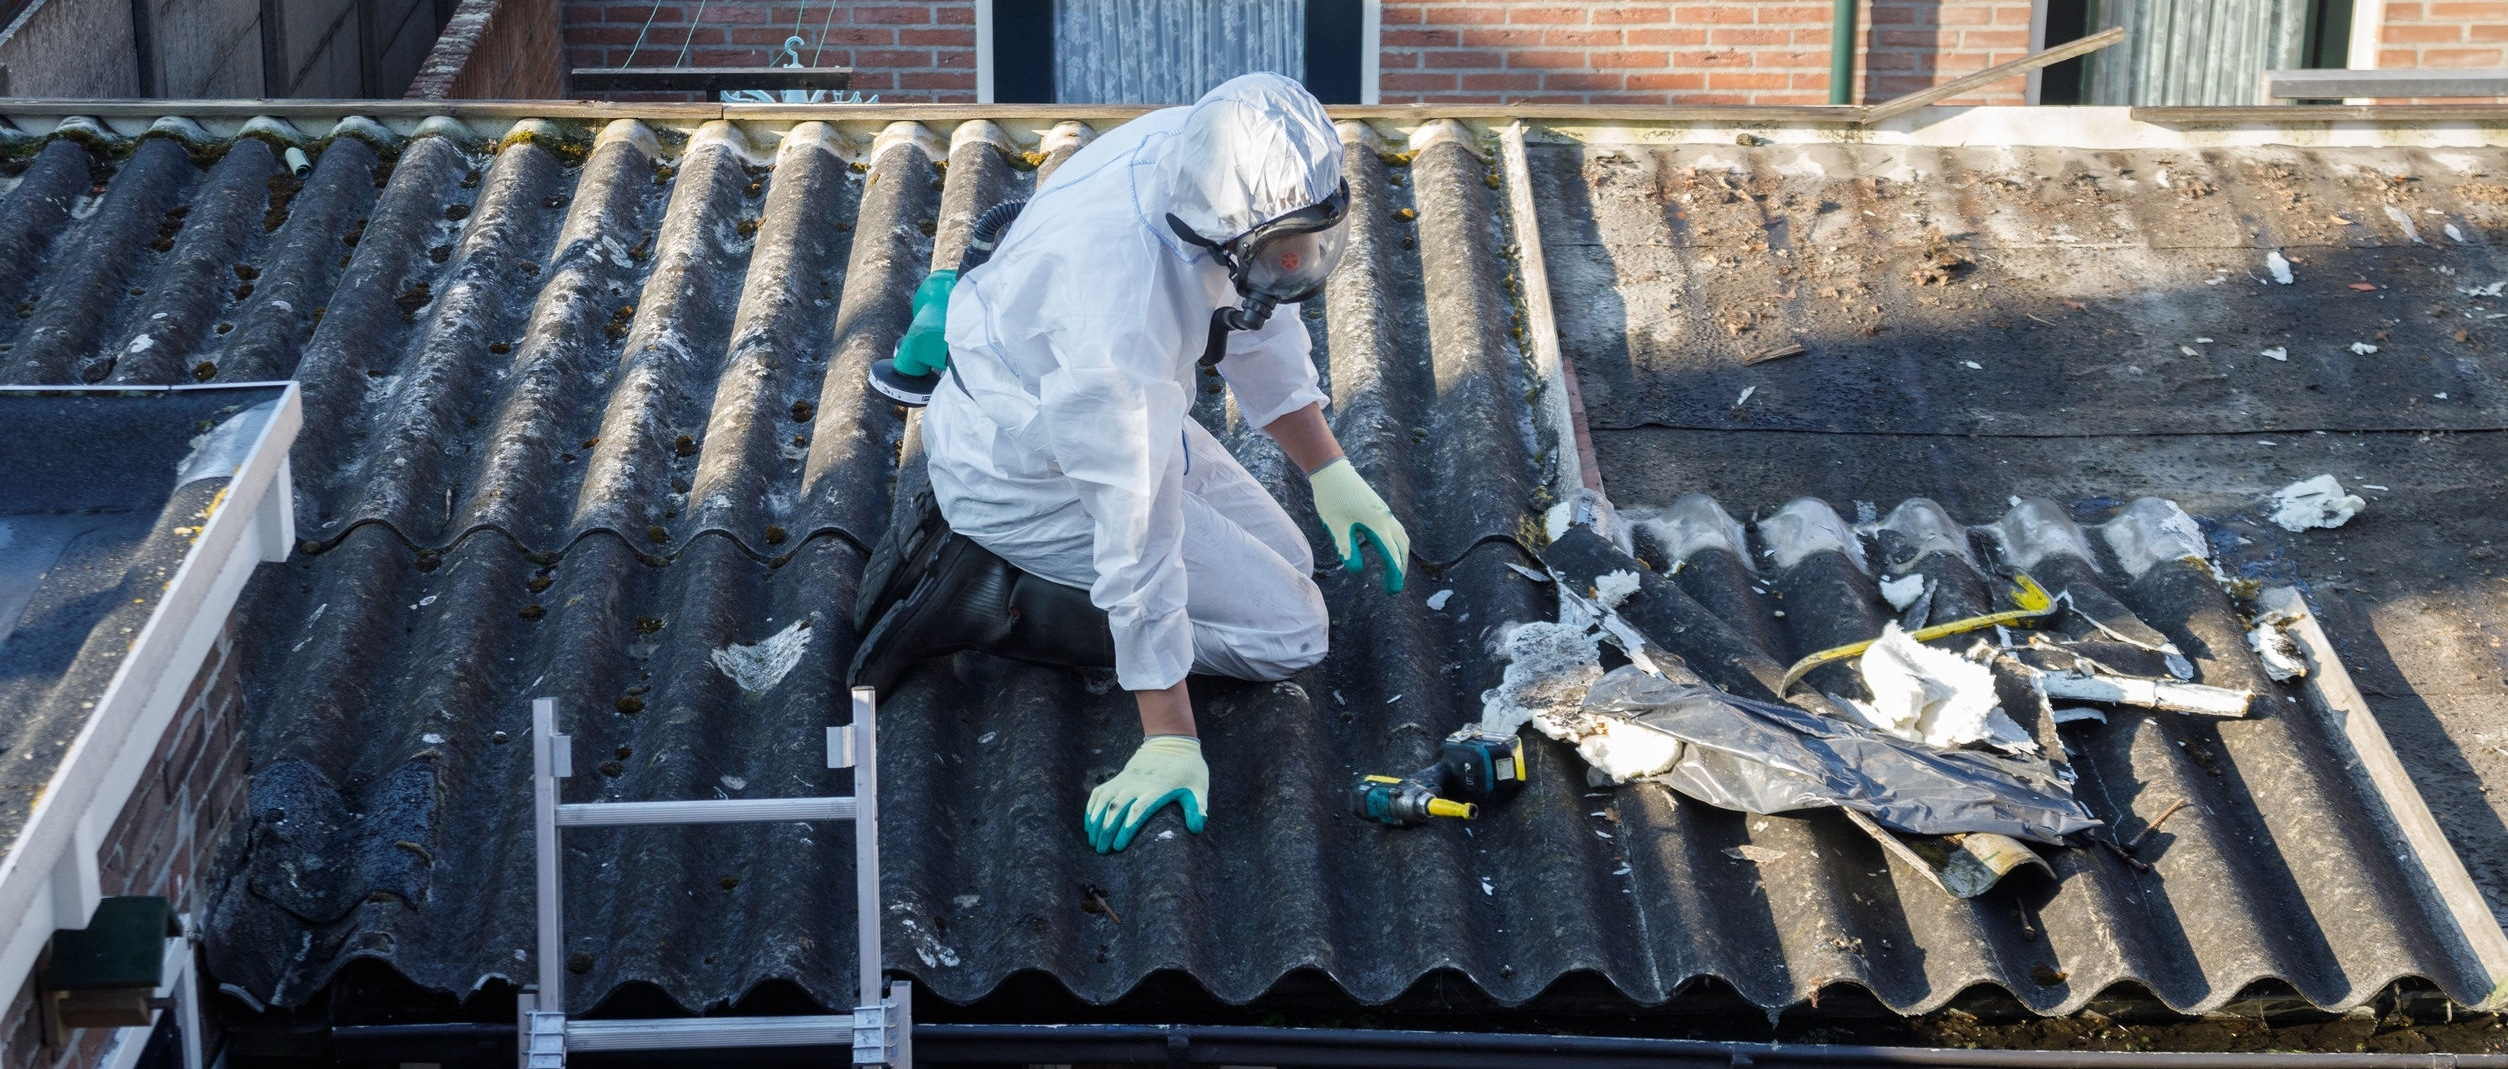 Men in protective suits are removing asbestos cement corrugated roofing